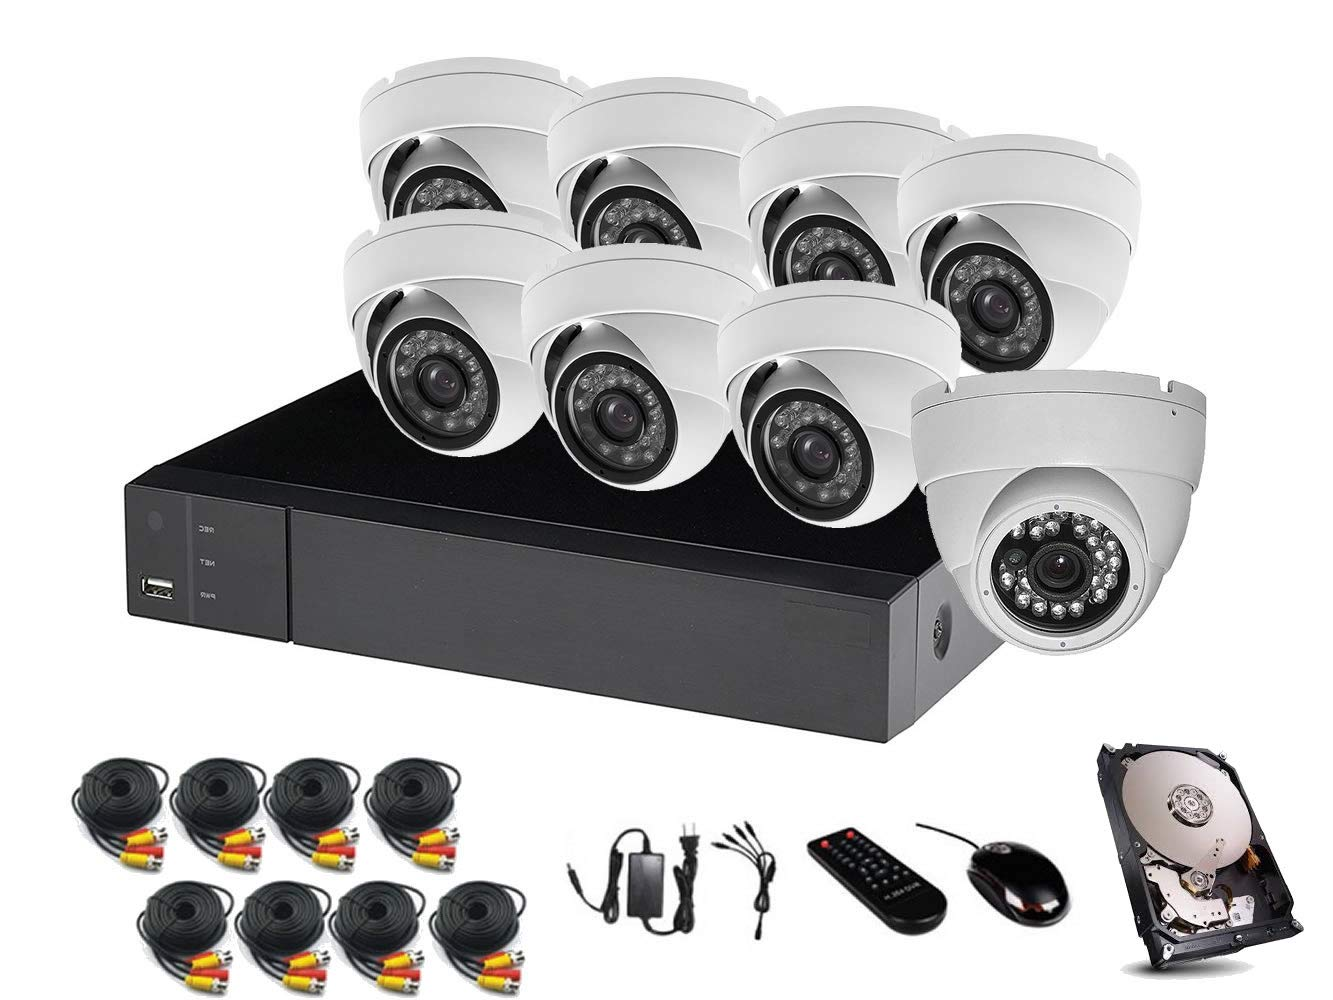 HDView 24CH Security Camera System, 16CH DVR and 8 CH NVR, with 1TB Hard Drive, 2.4MP 1080P HD Security Camera 4-in-1 TVI AHD CVI 960H DVR Kit, Night Vision Infrared IR Weatherproof Dome Camera Kit